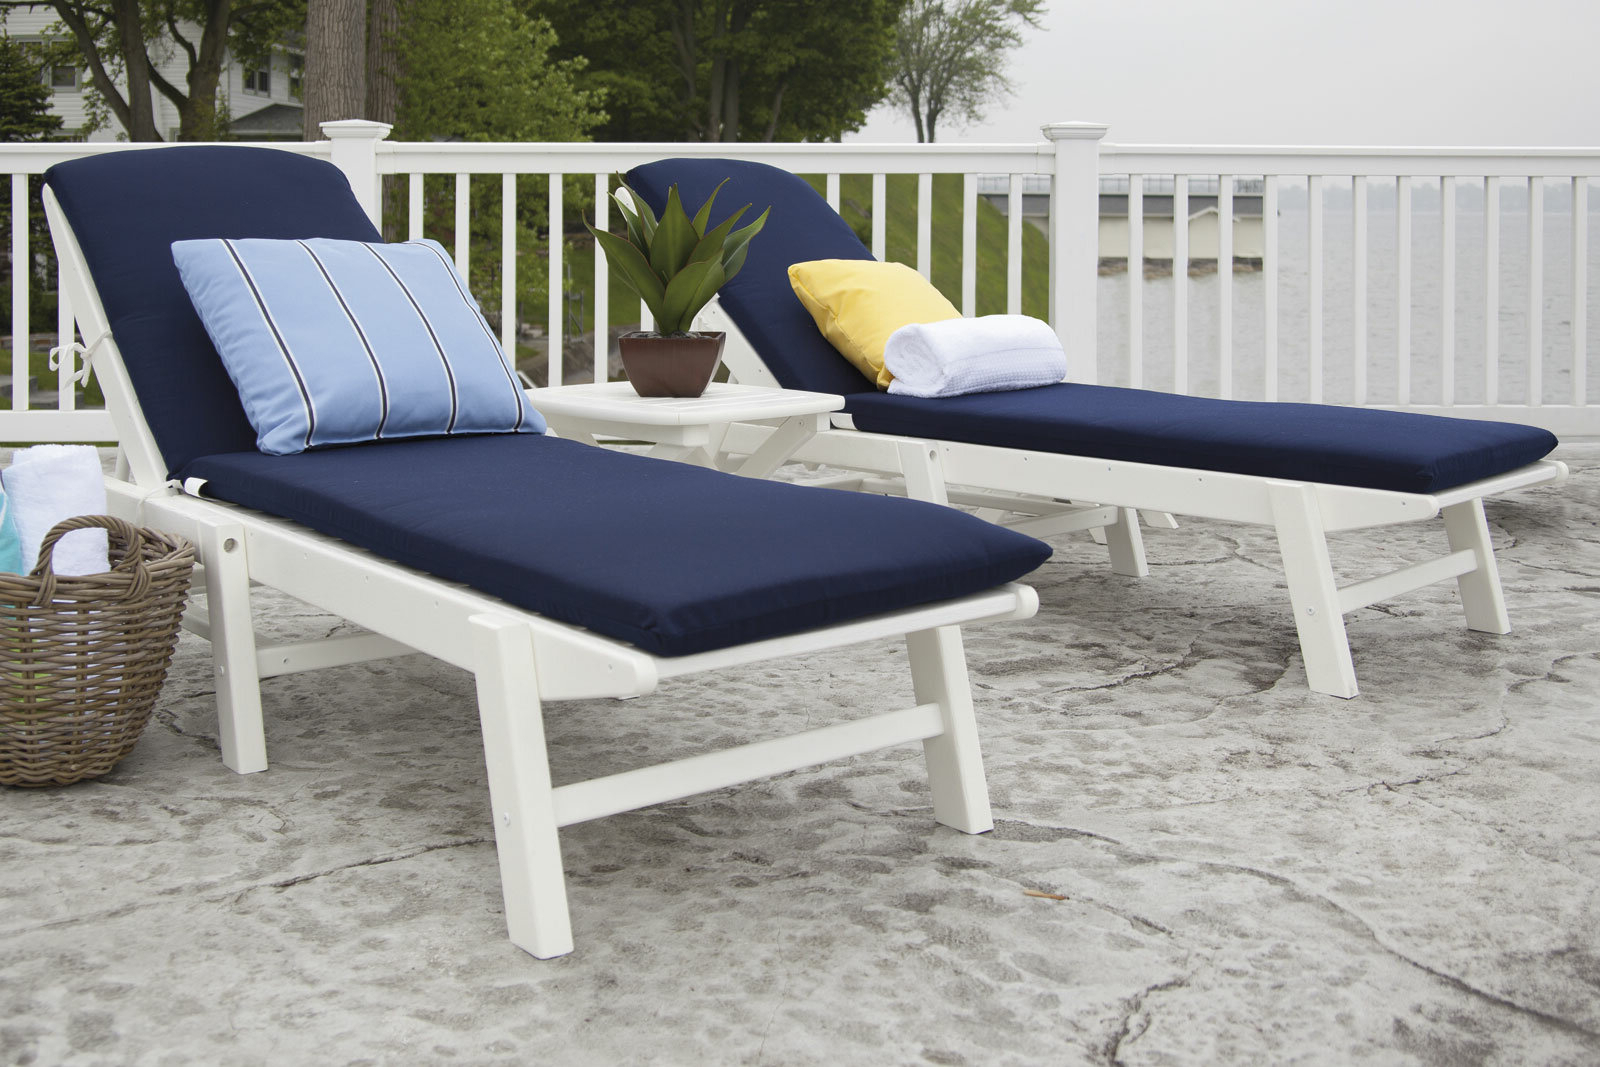 Nautical 3 Piece Chaise Set With Cushions Pertaining To Recent Nautical 3 Piece Outdoor Chaise Lounge Sets With Table (View 8 of 25)